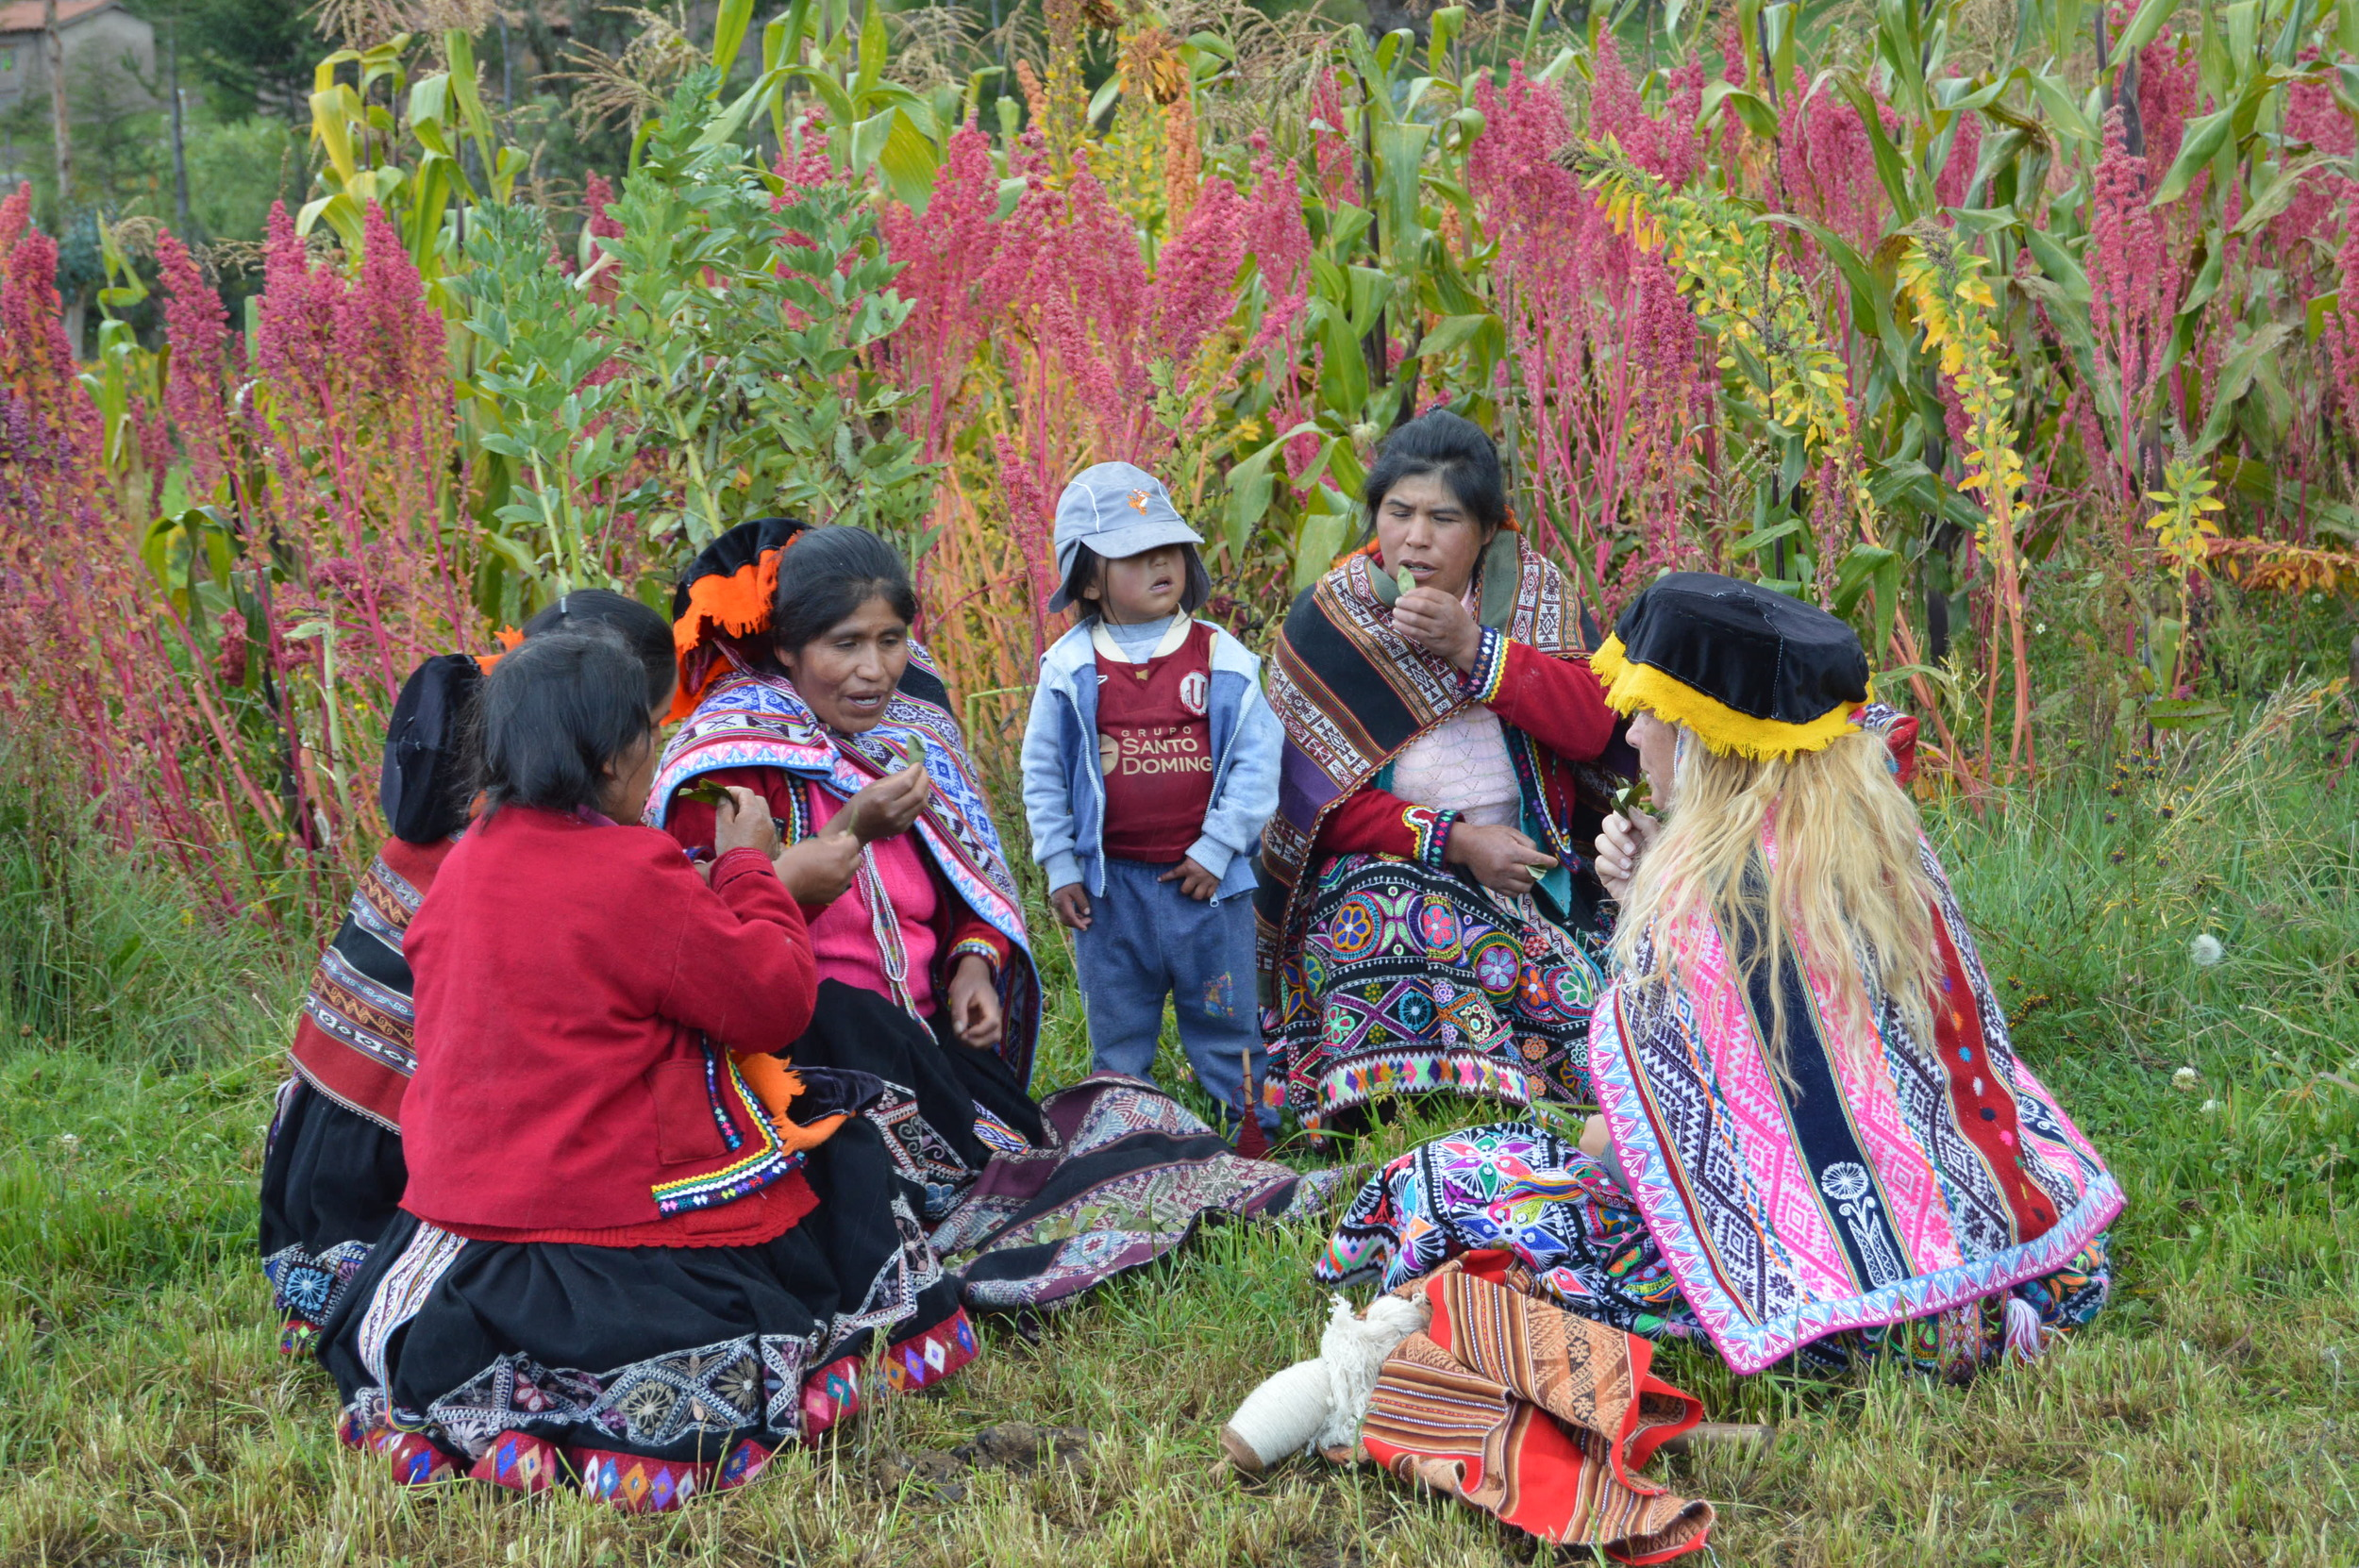 Amaru indigenous community near Cusco, Peru